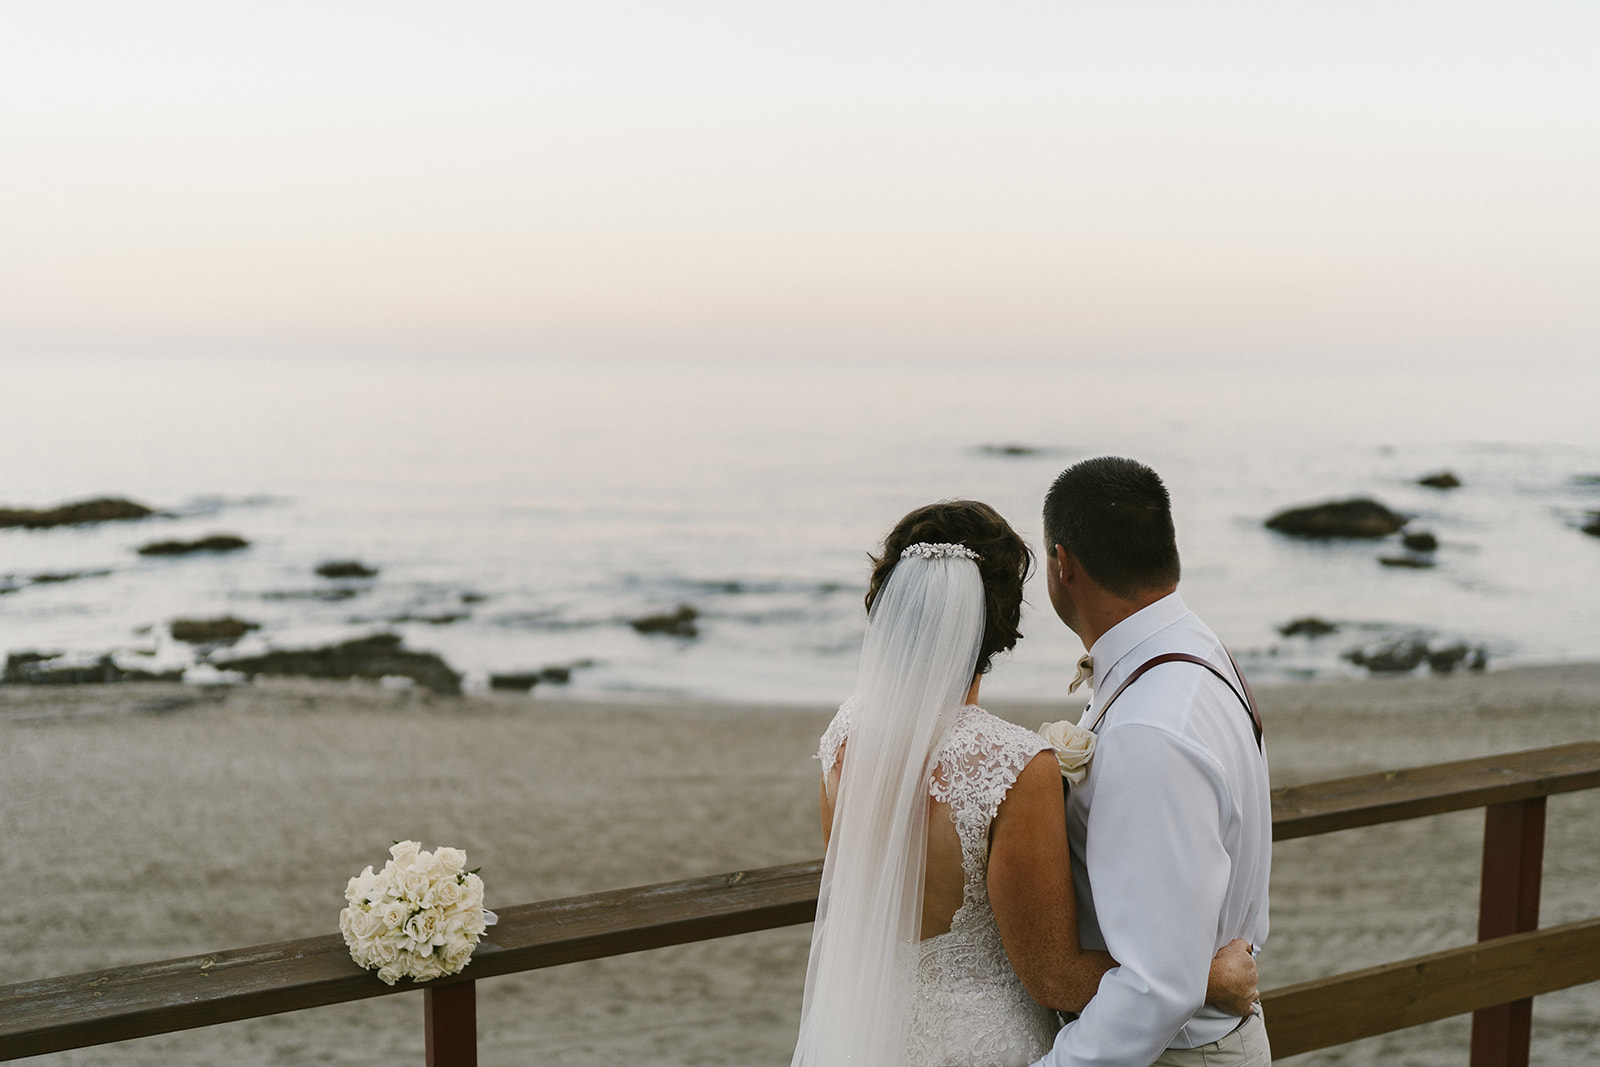 Wedding on the beach in Spain, photo by Andreas Holm